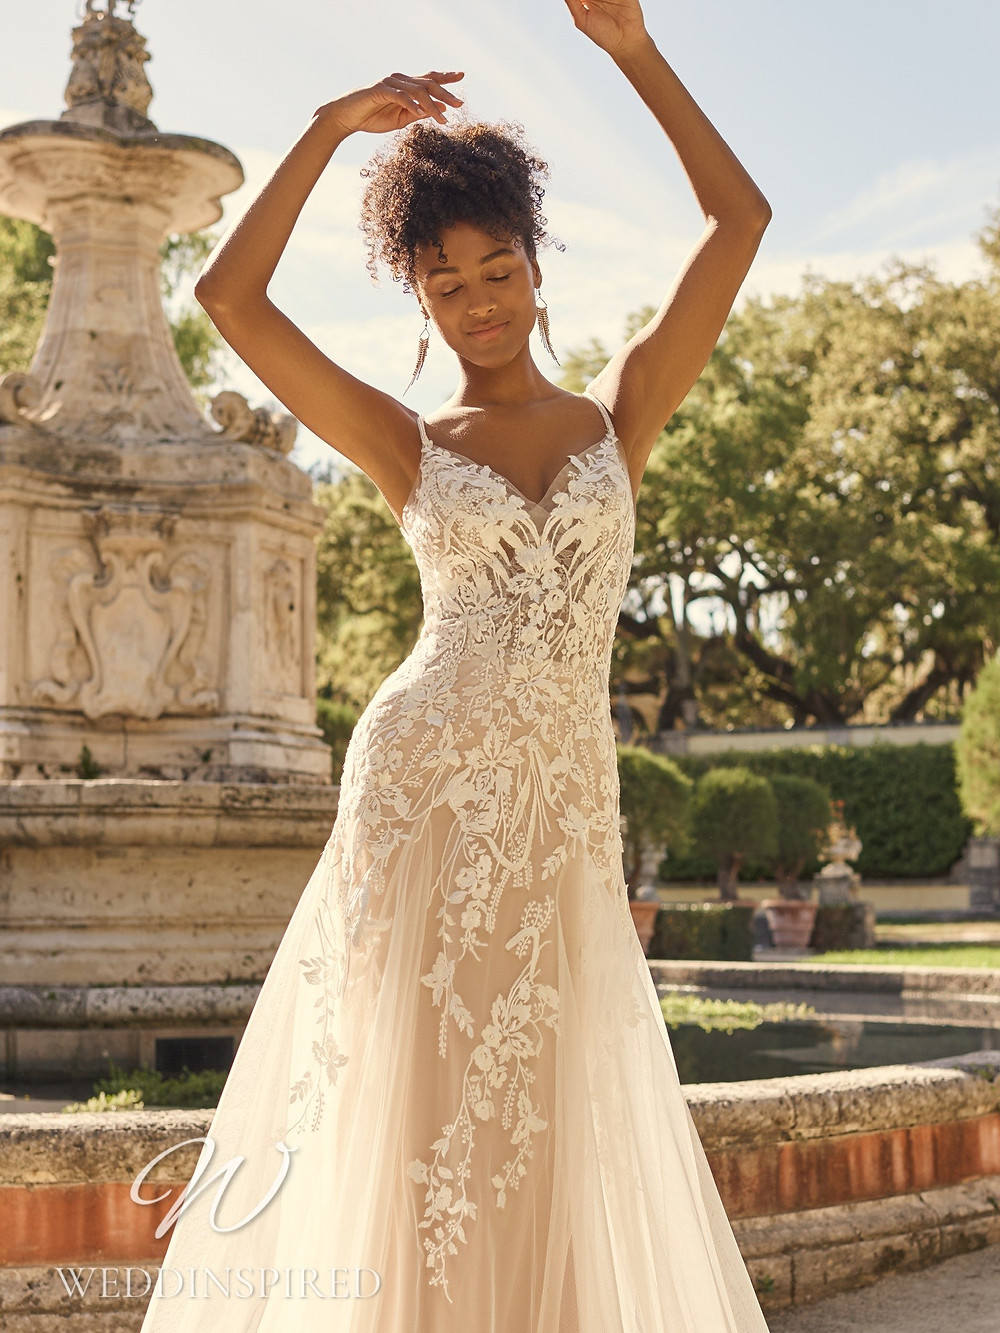 A Maggie Sottero 2021 blush lace and tulle A-line wedding dress